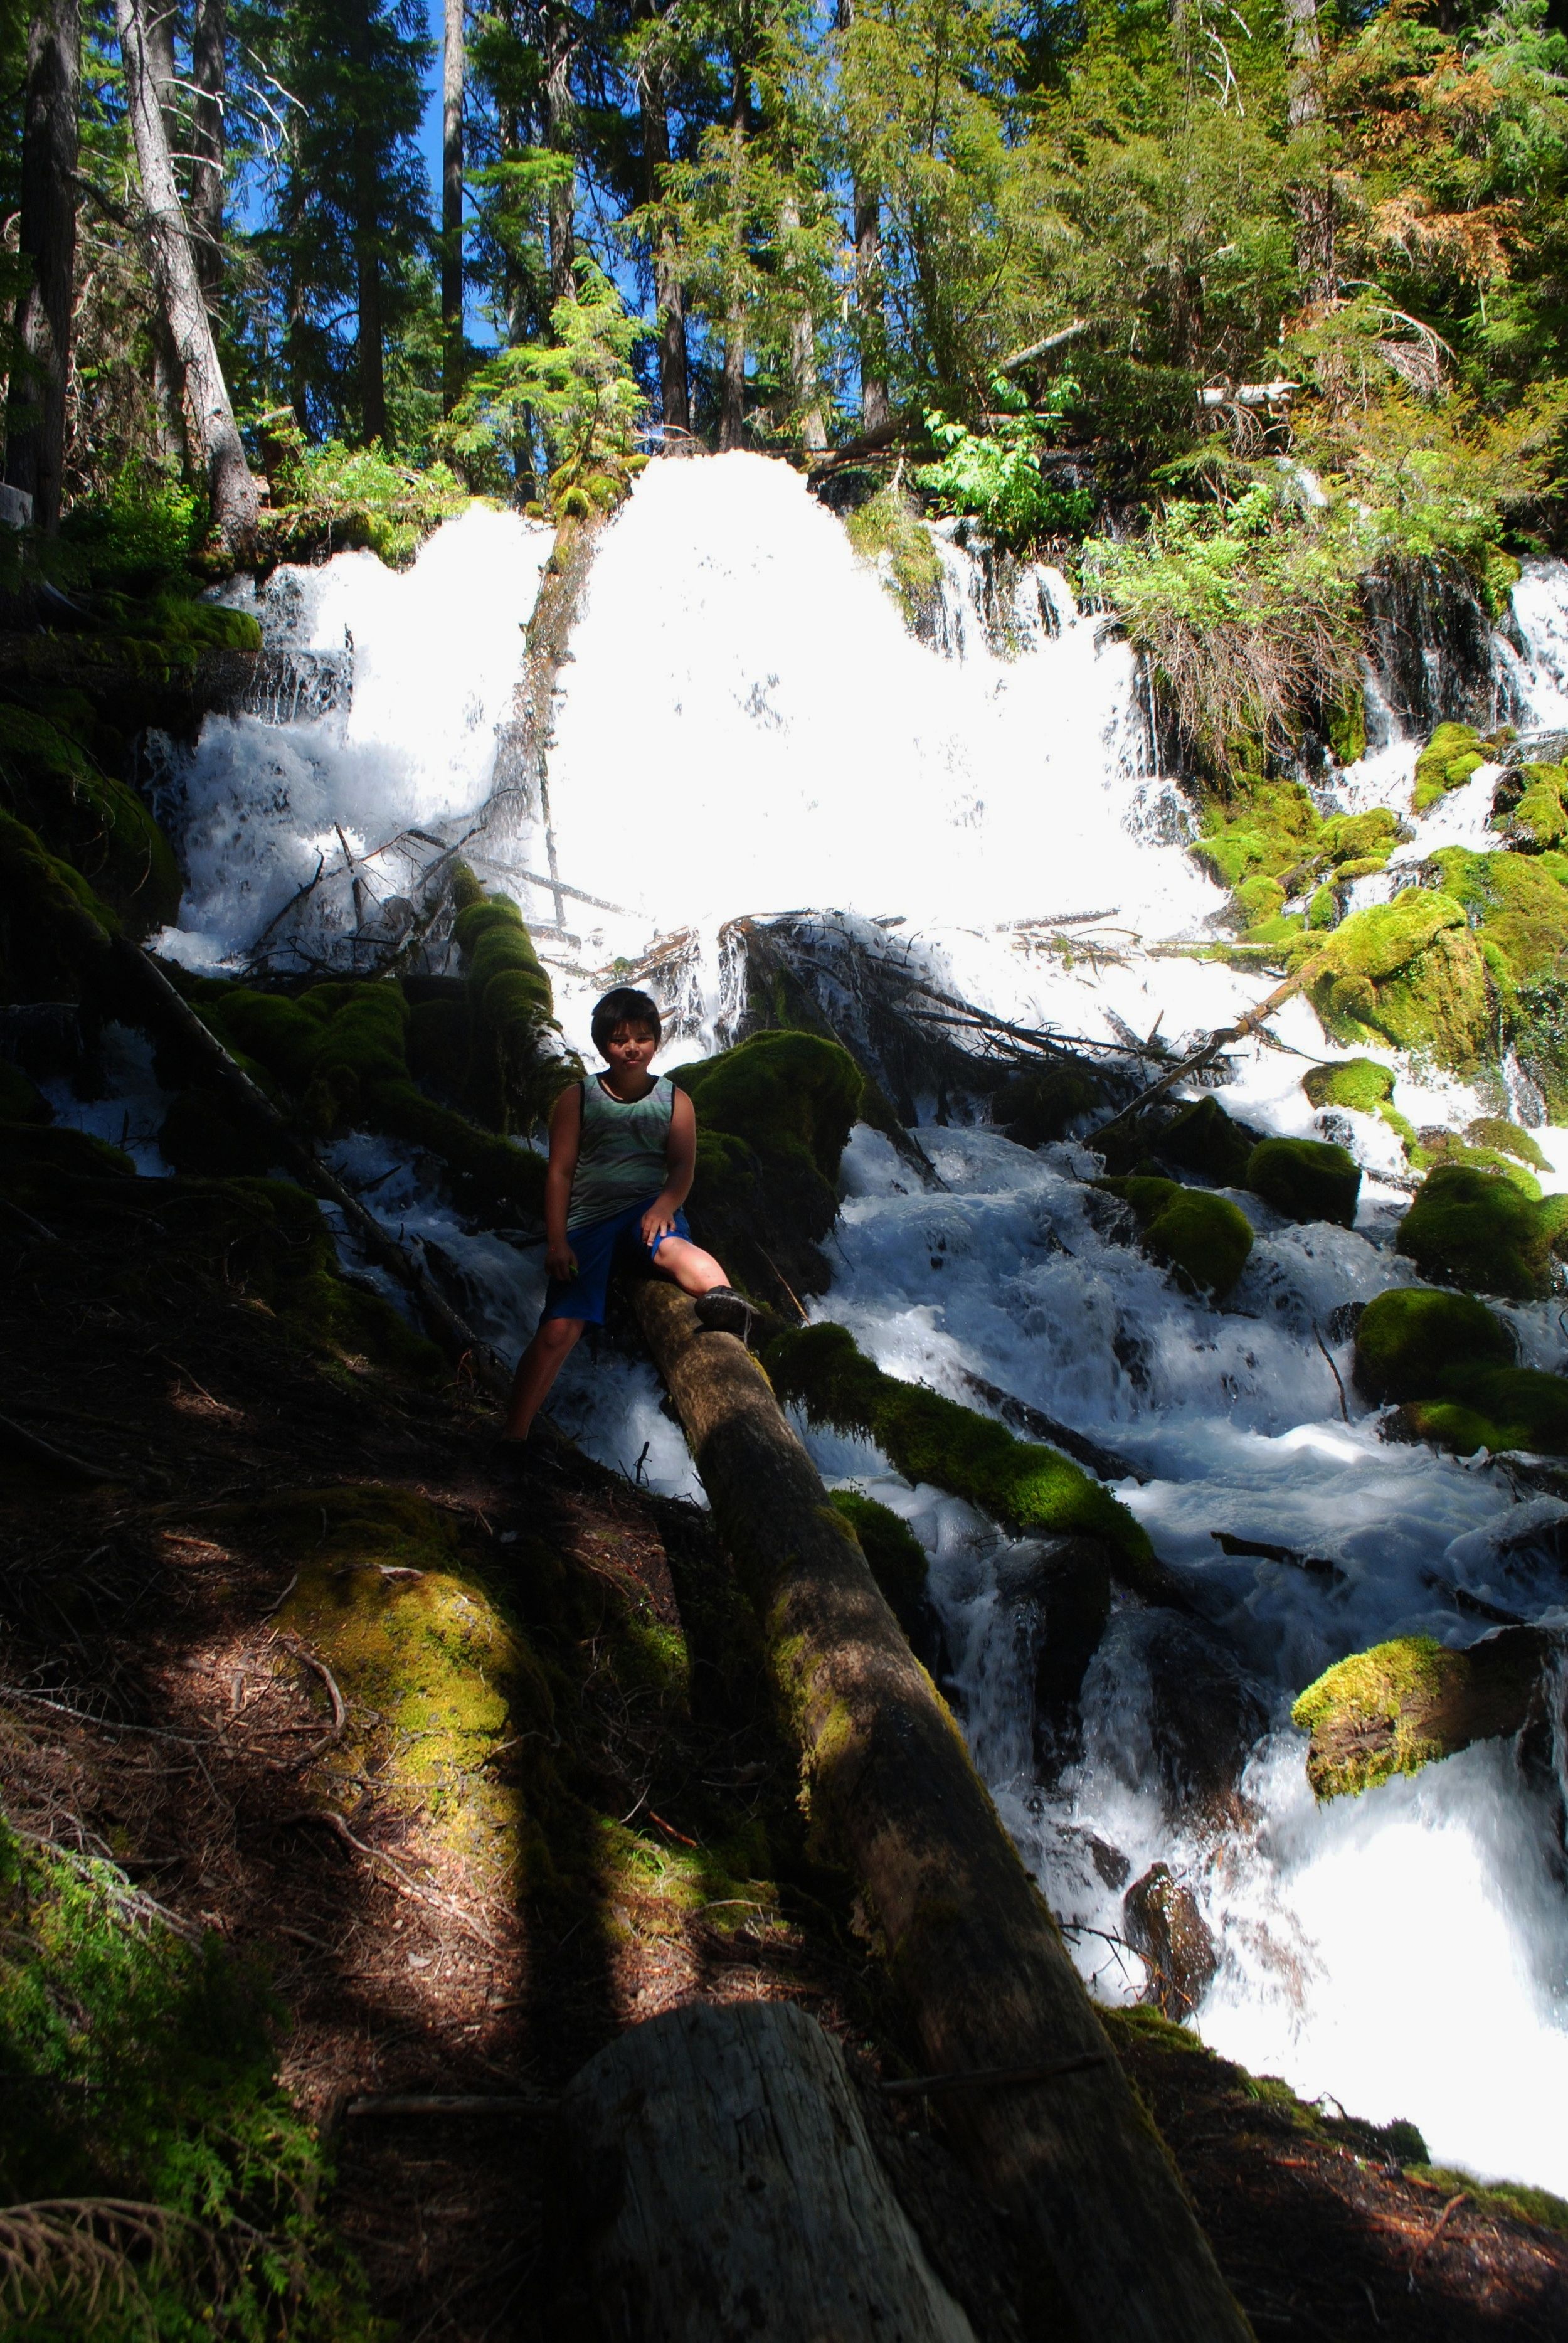 FOUR WATERFALLS, ONE DAY - HIKING ADVENTURES WITH KIDS - What to do in Southern Oregon - Things to do - Douglas County - Clearwater Falls